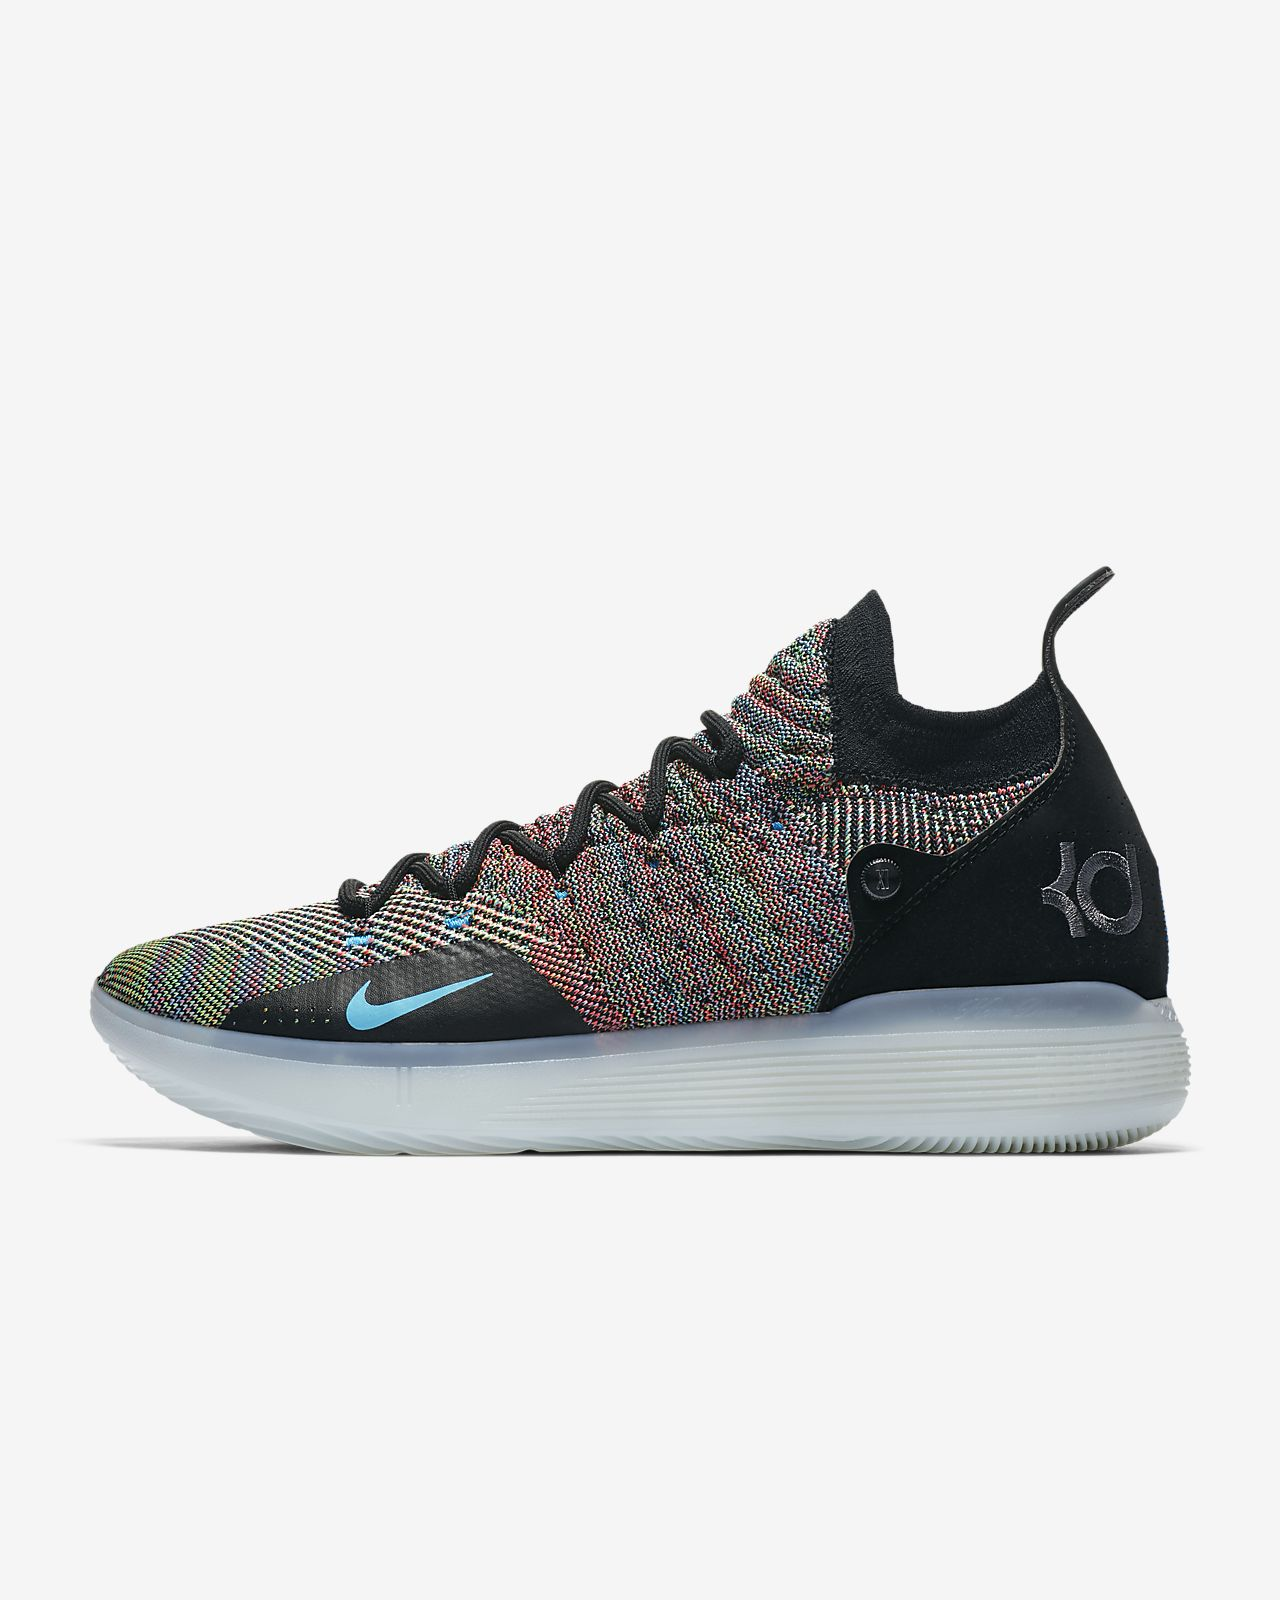 hot sales 0e213 c5703 ... Nike Zoom KD11 Basketball Shoe